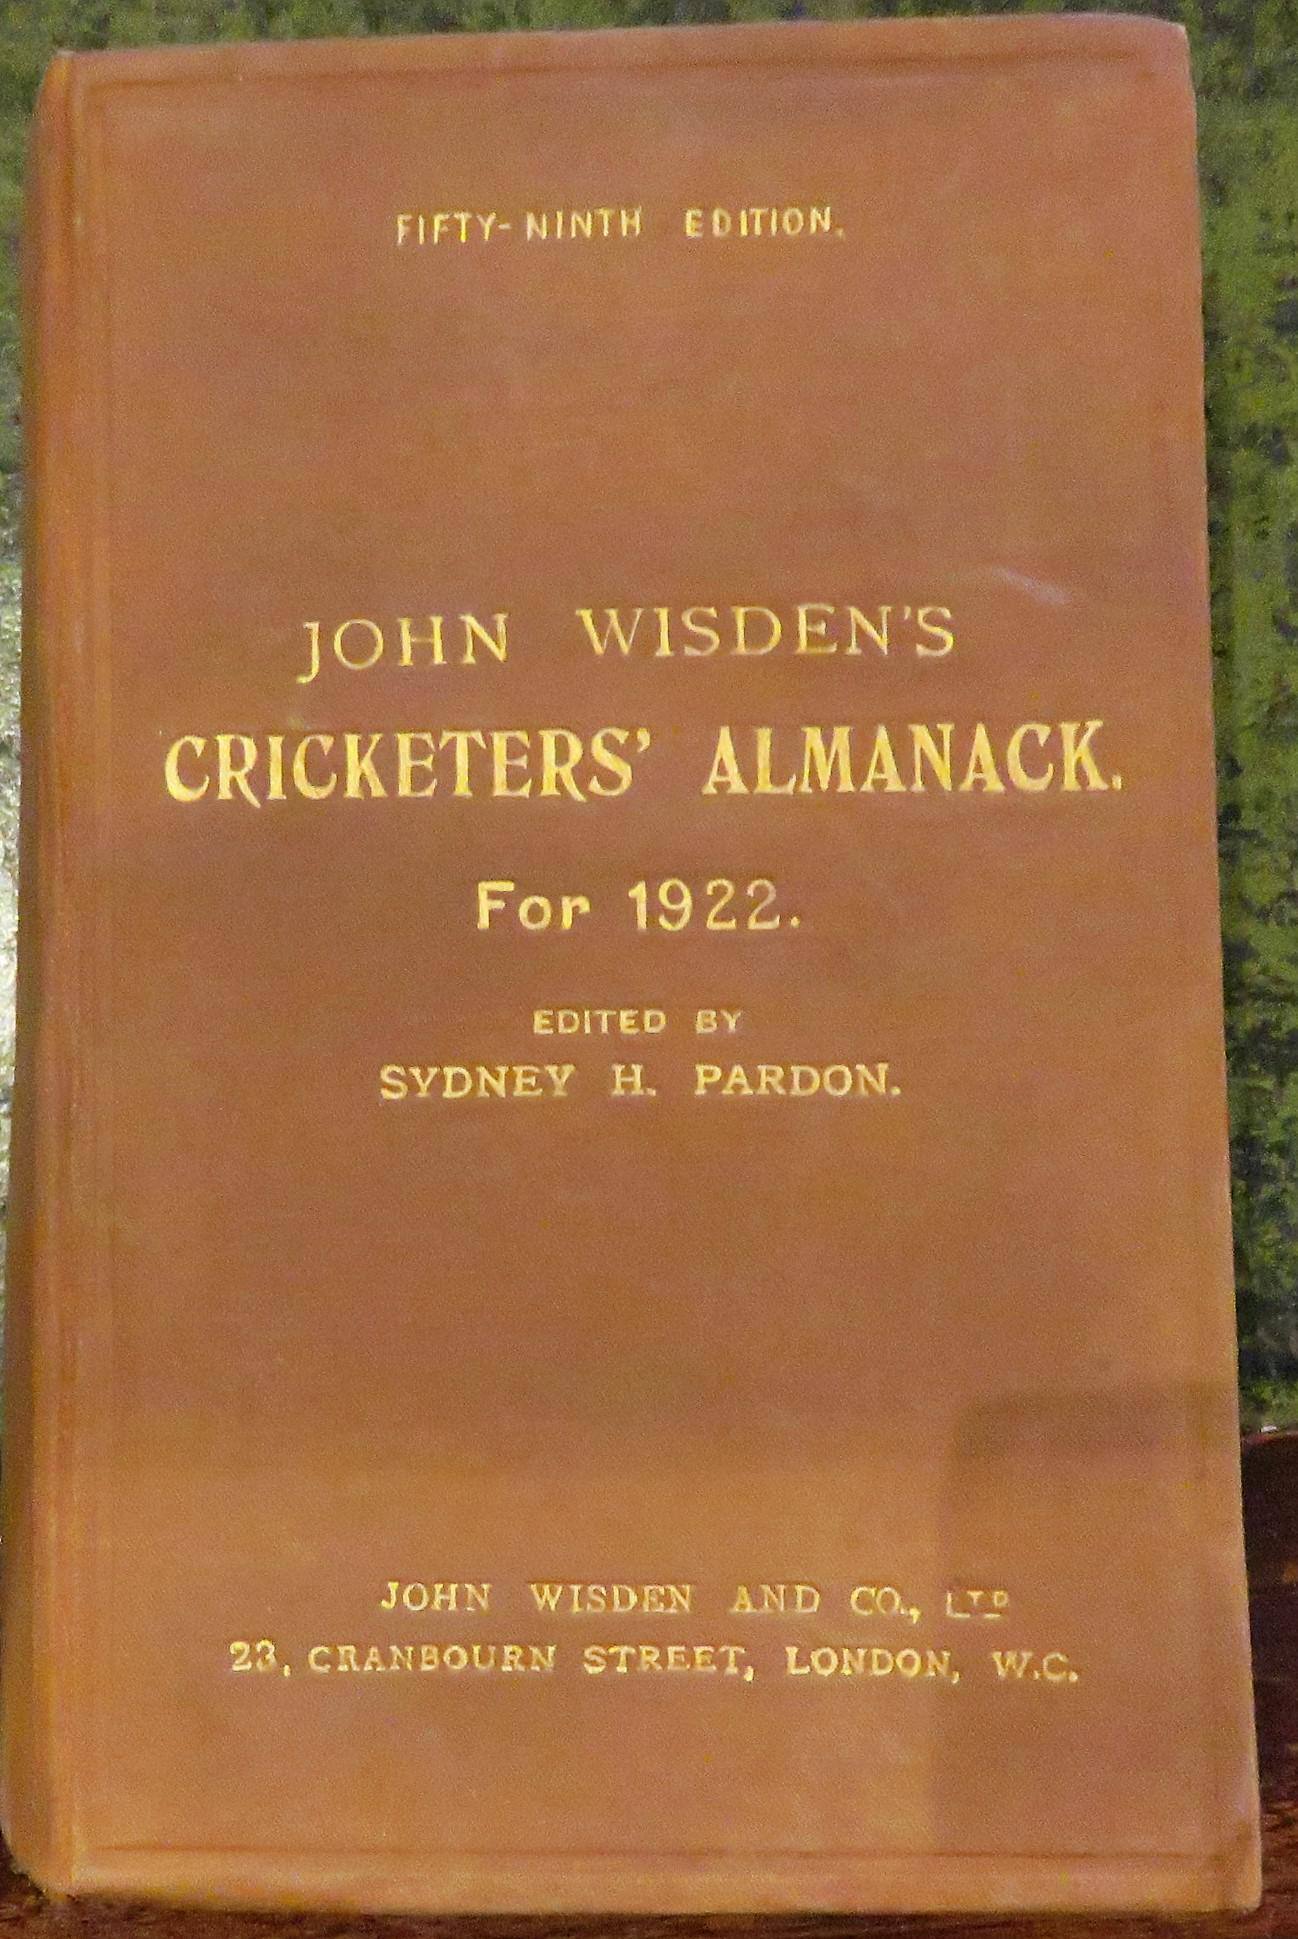 **John Wisden's Cricketers' Almanack For 1922**